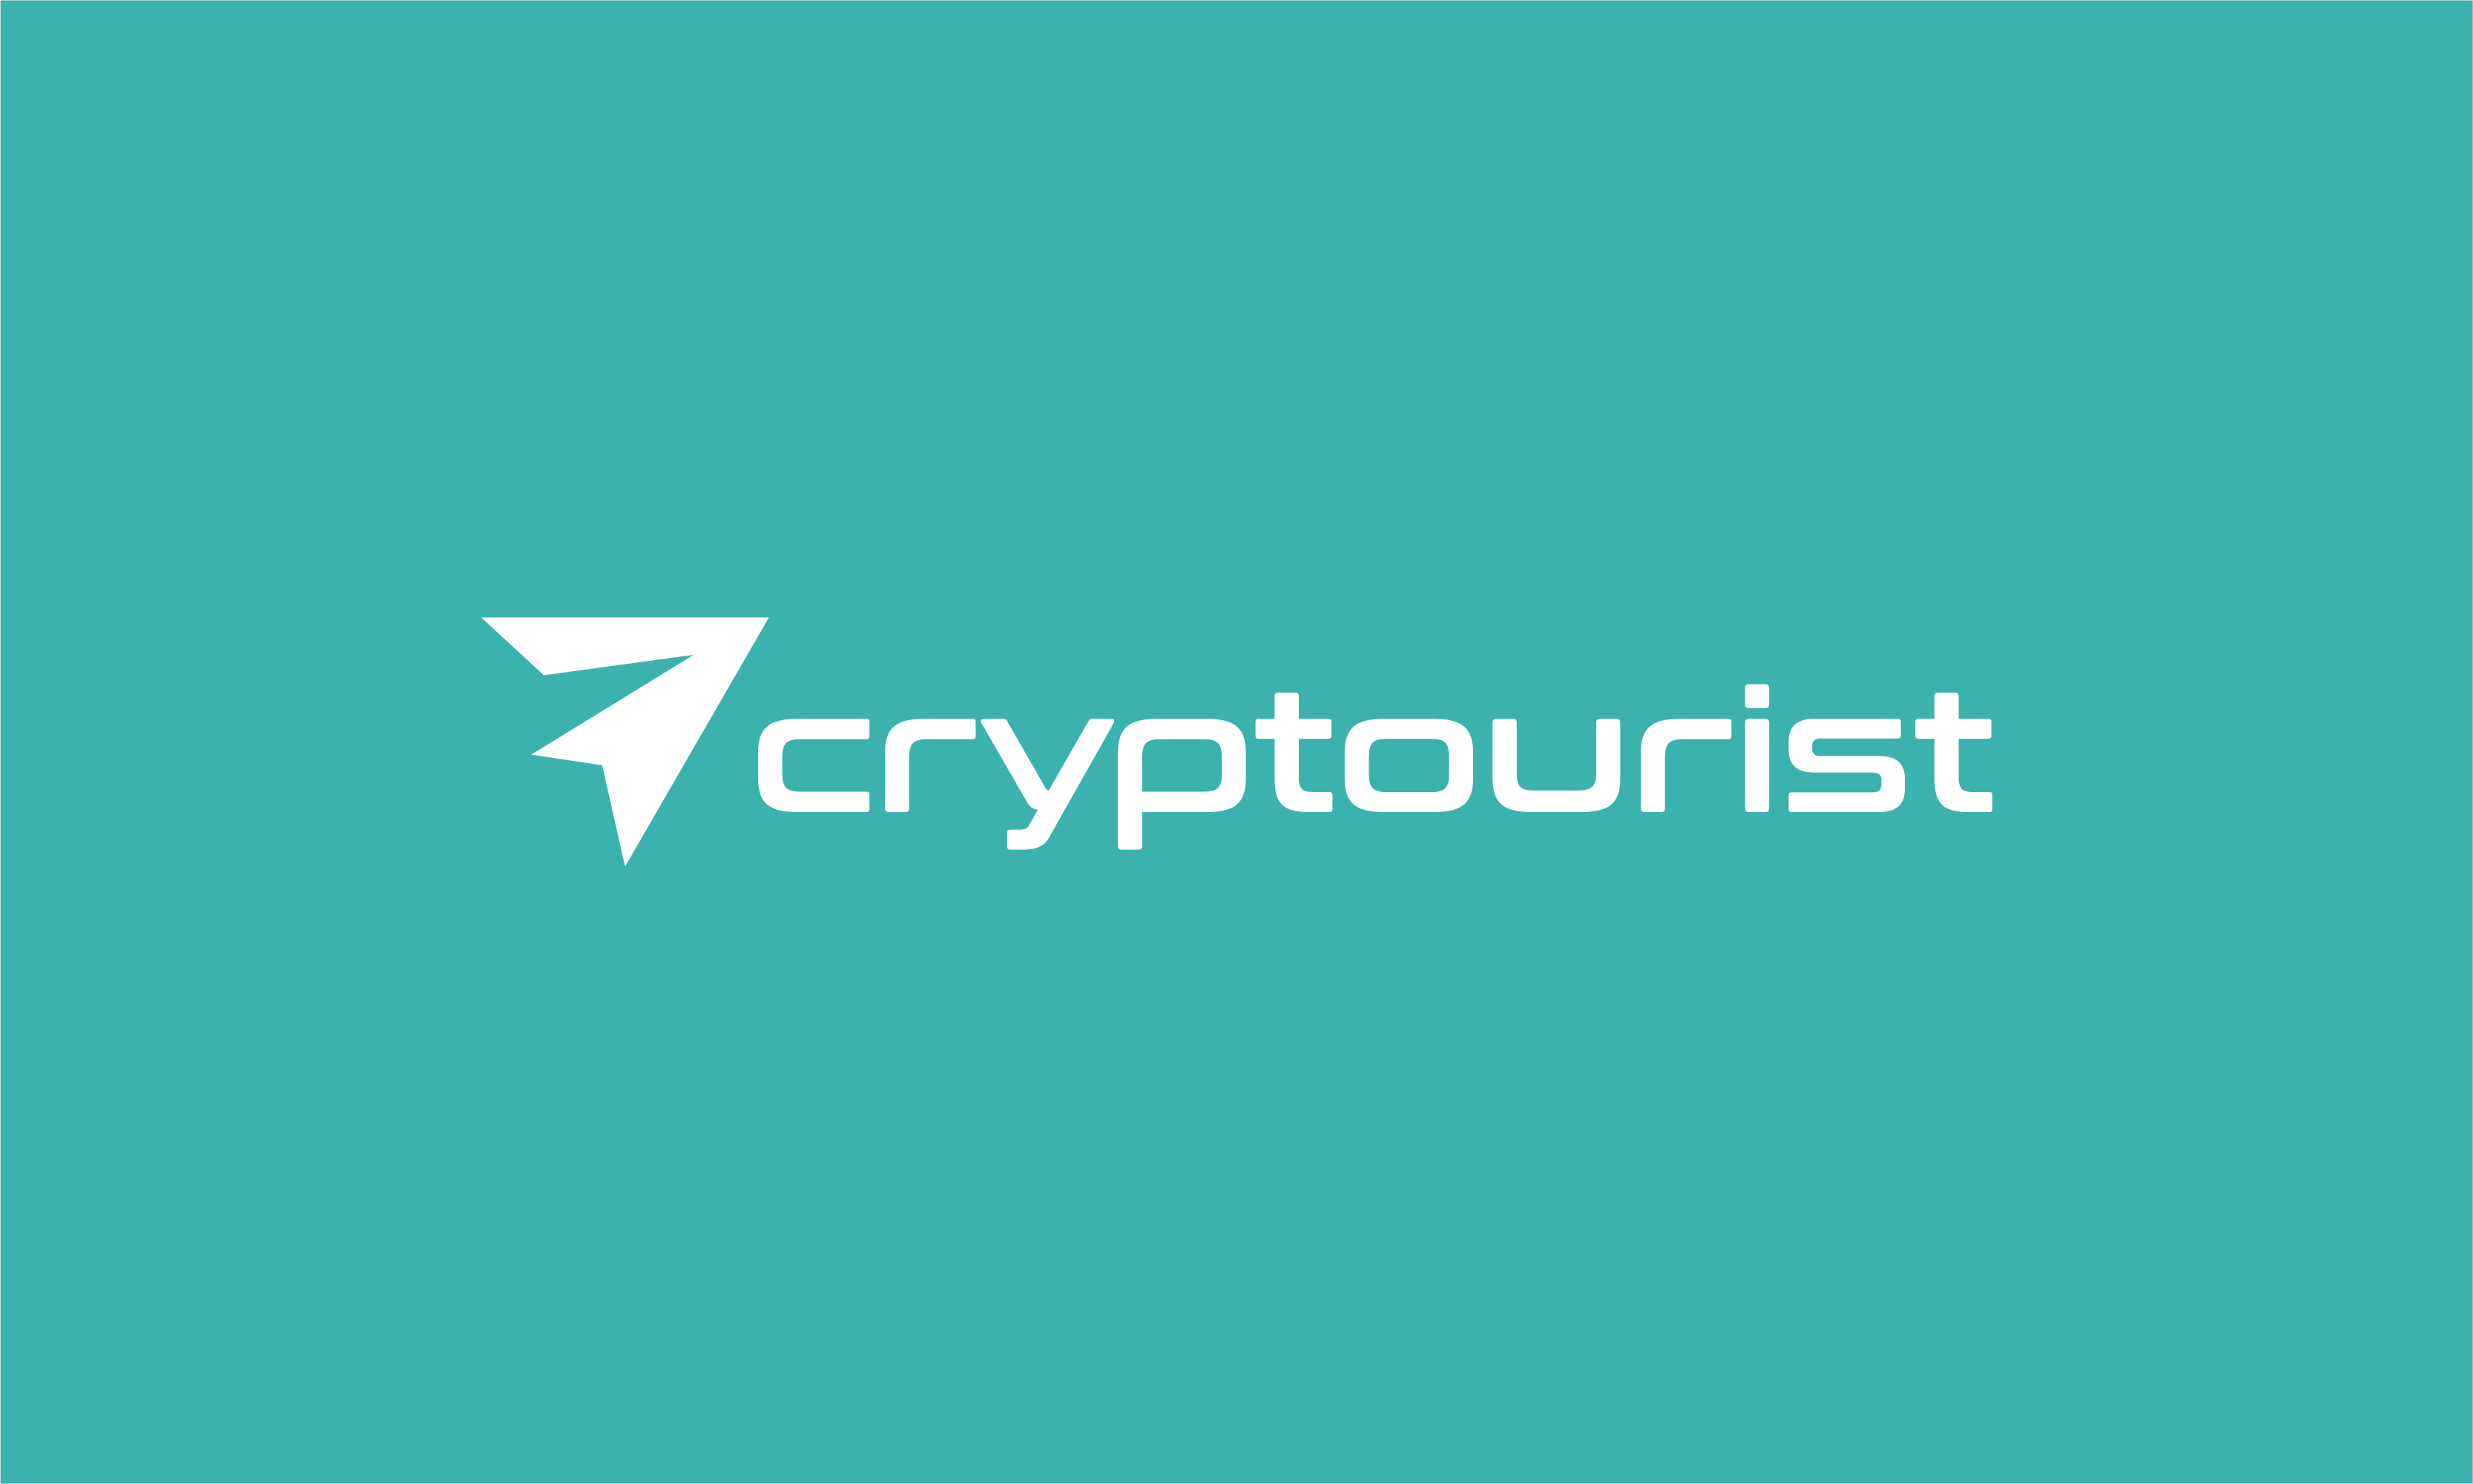 Cryptourist - Cryptocurrency brand name for sale